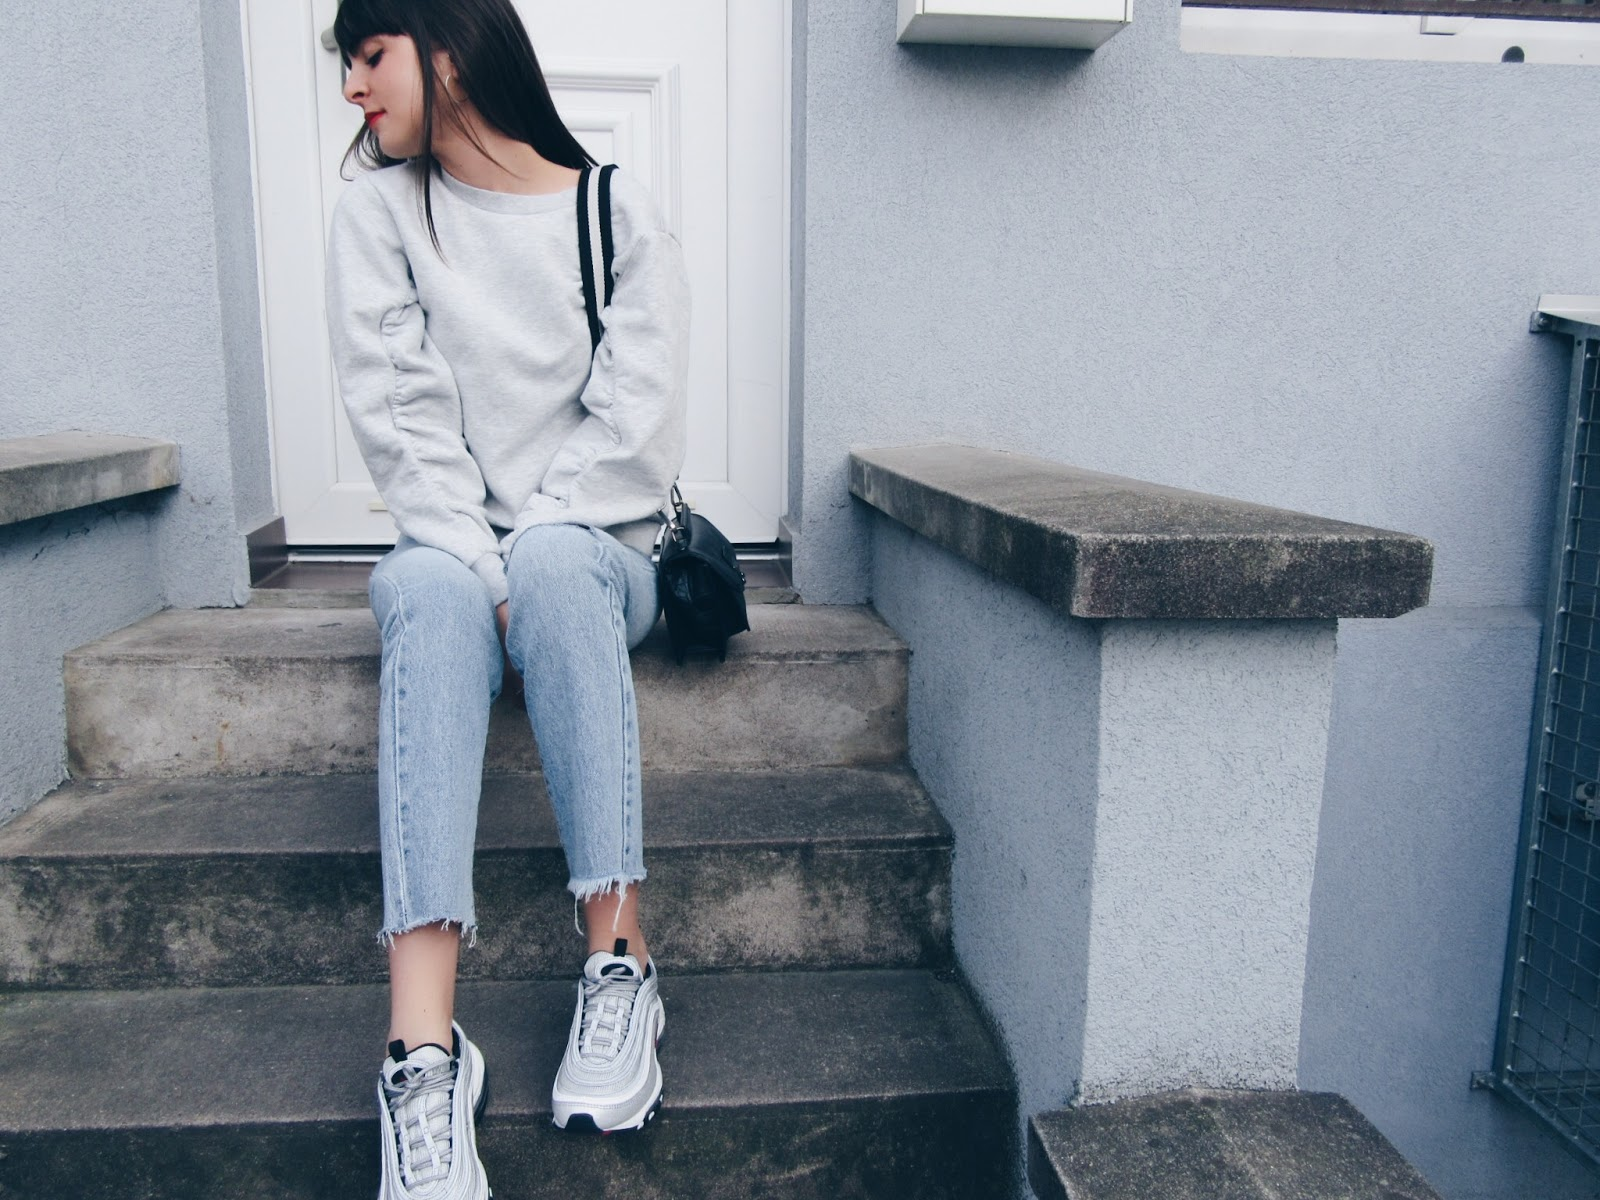 AIR MAX 97 SILVER: DENIM AND GREY LOOK | DOPE & FRINGED